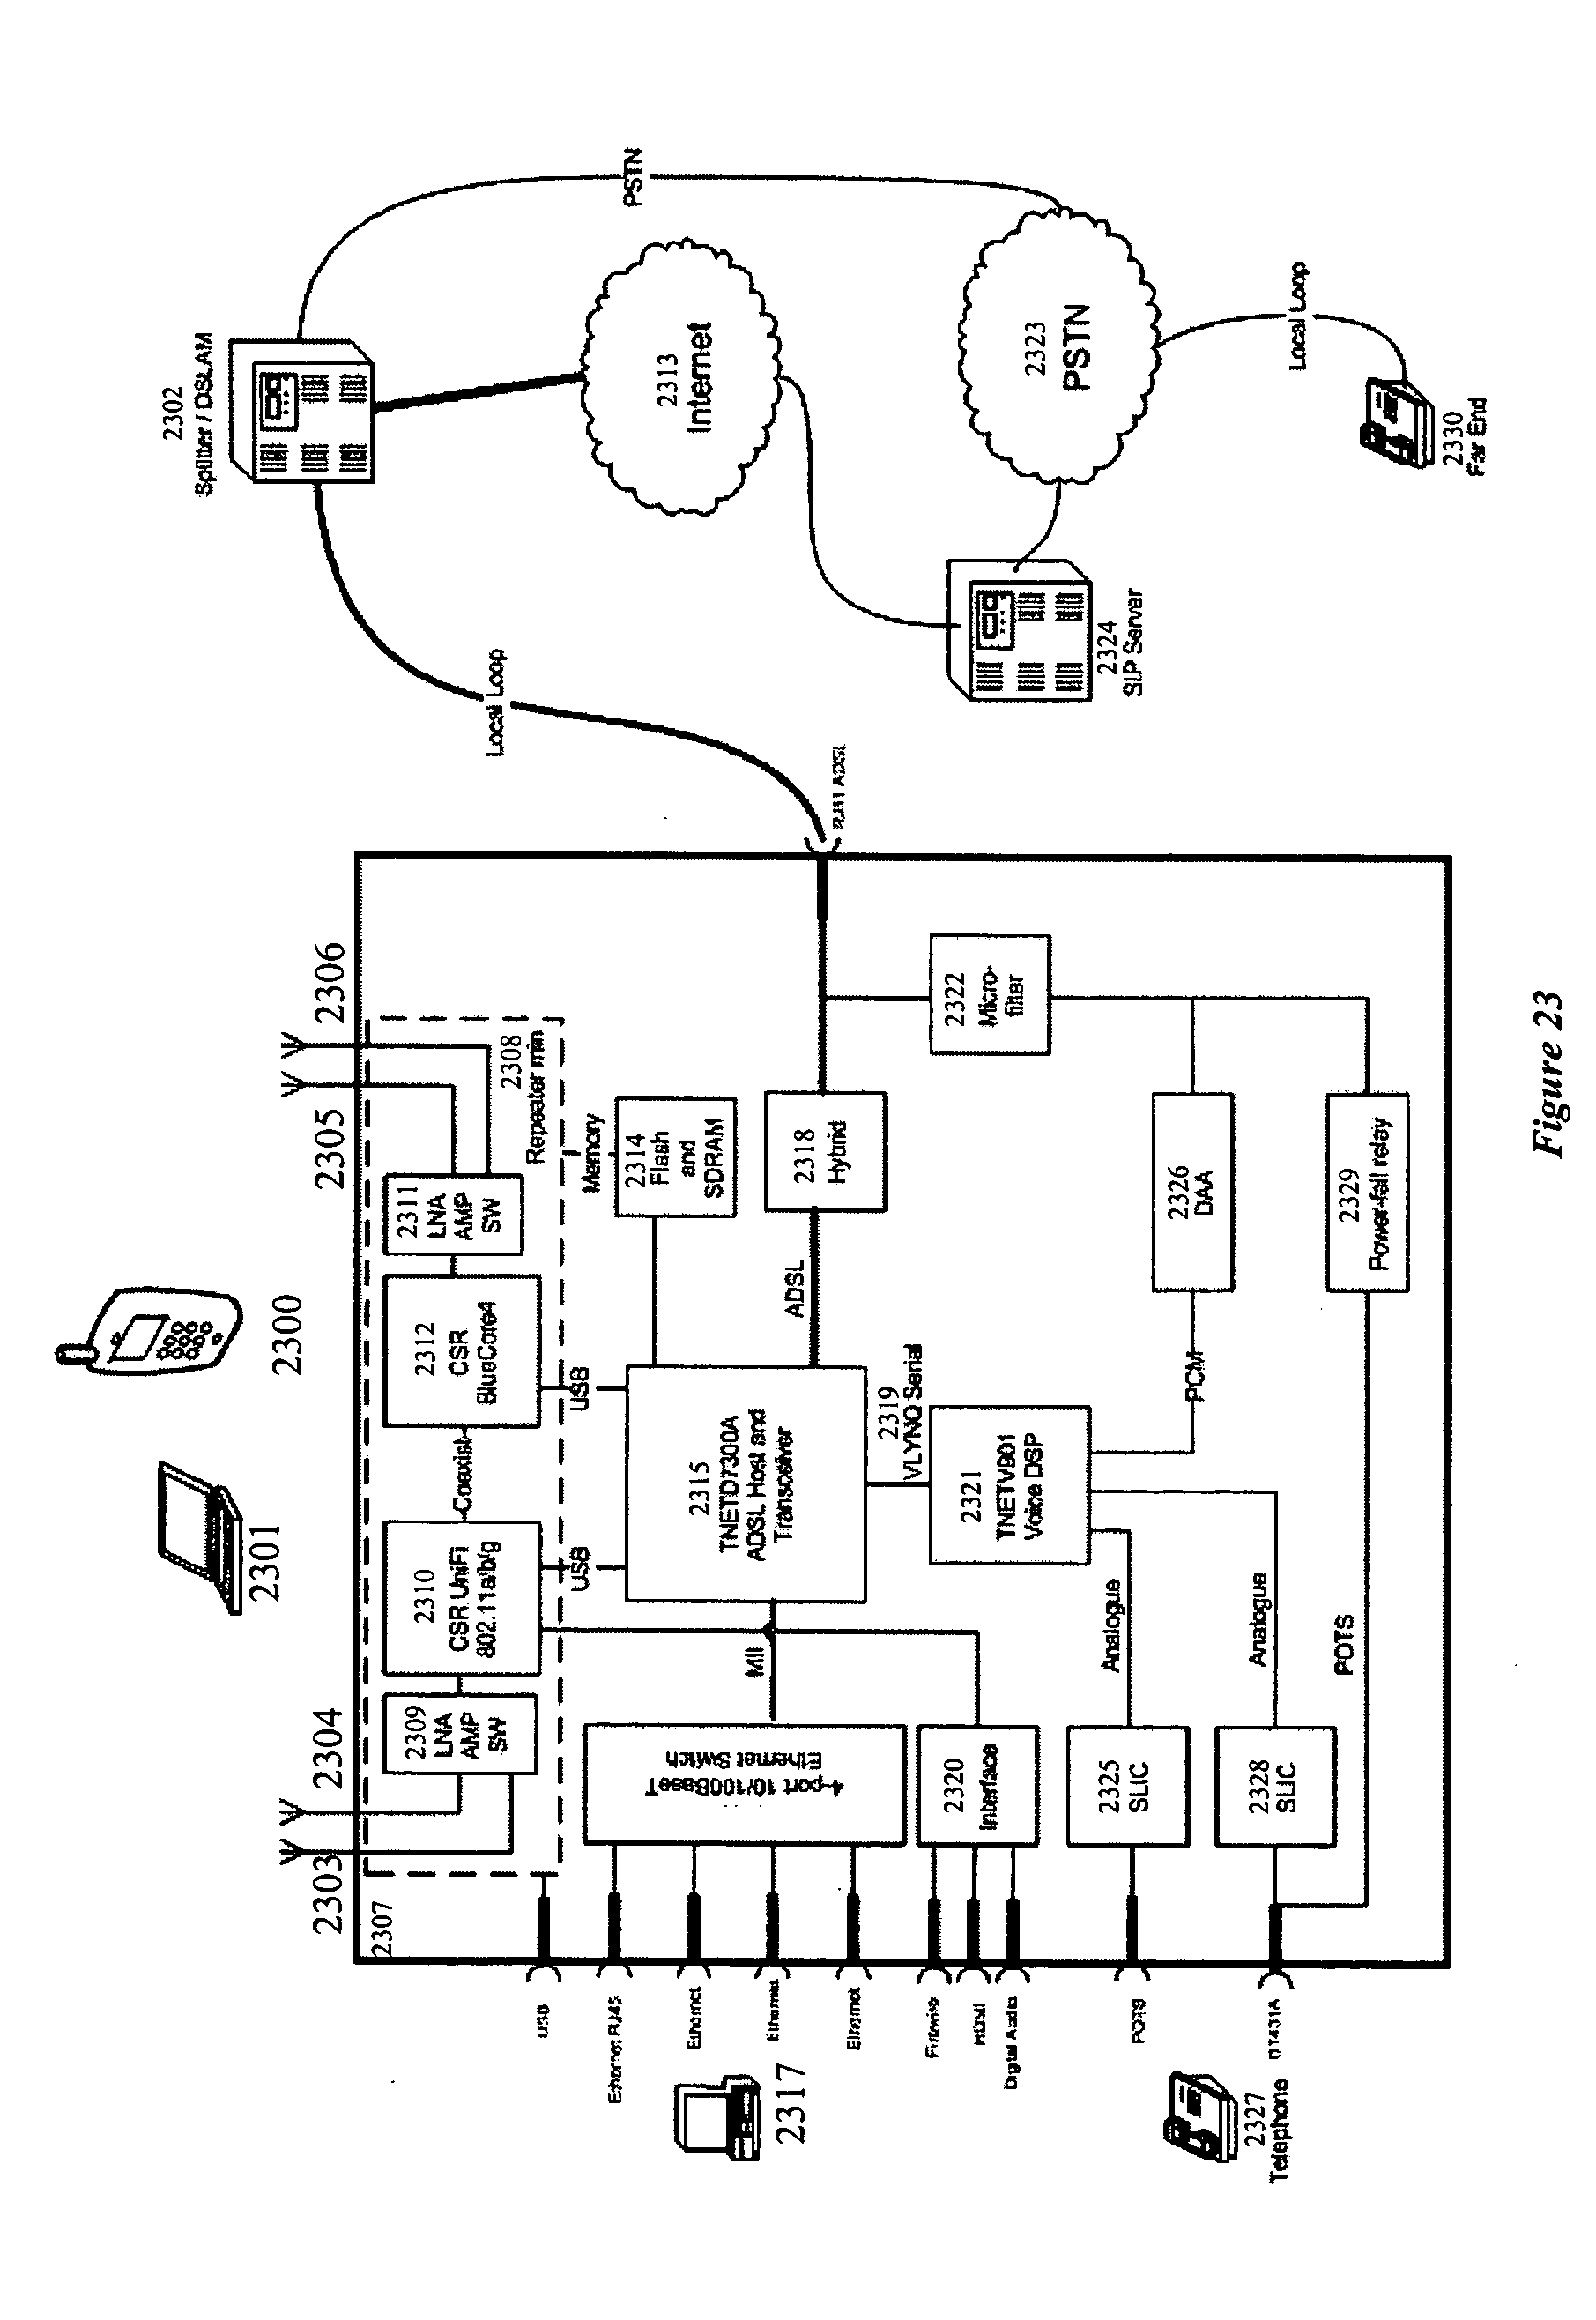 Us20050286466 System For Providing Mobile Voip Visiblelight Audio Transmitter Circuit Diagram Tradeoficcom Patent Drawing